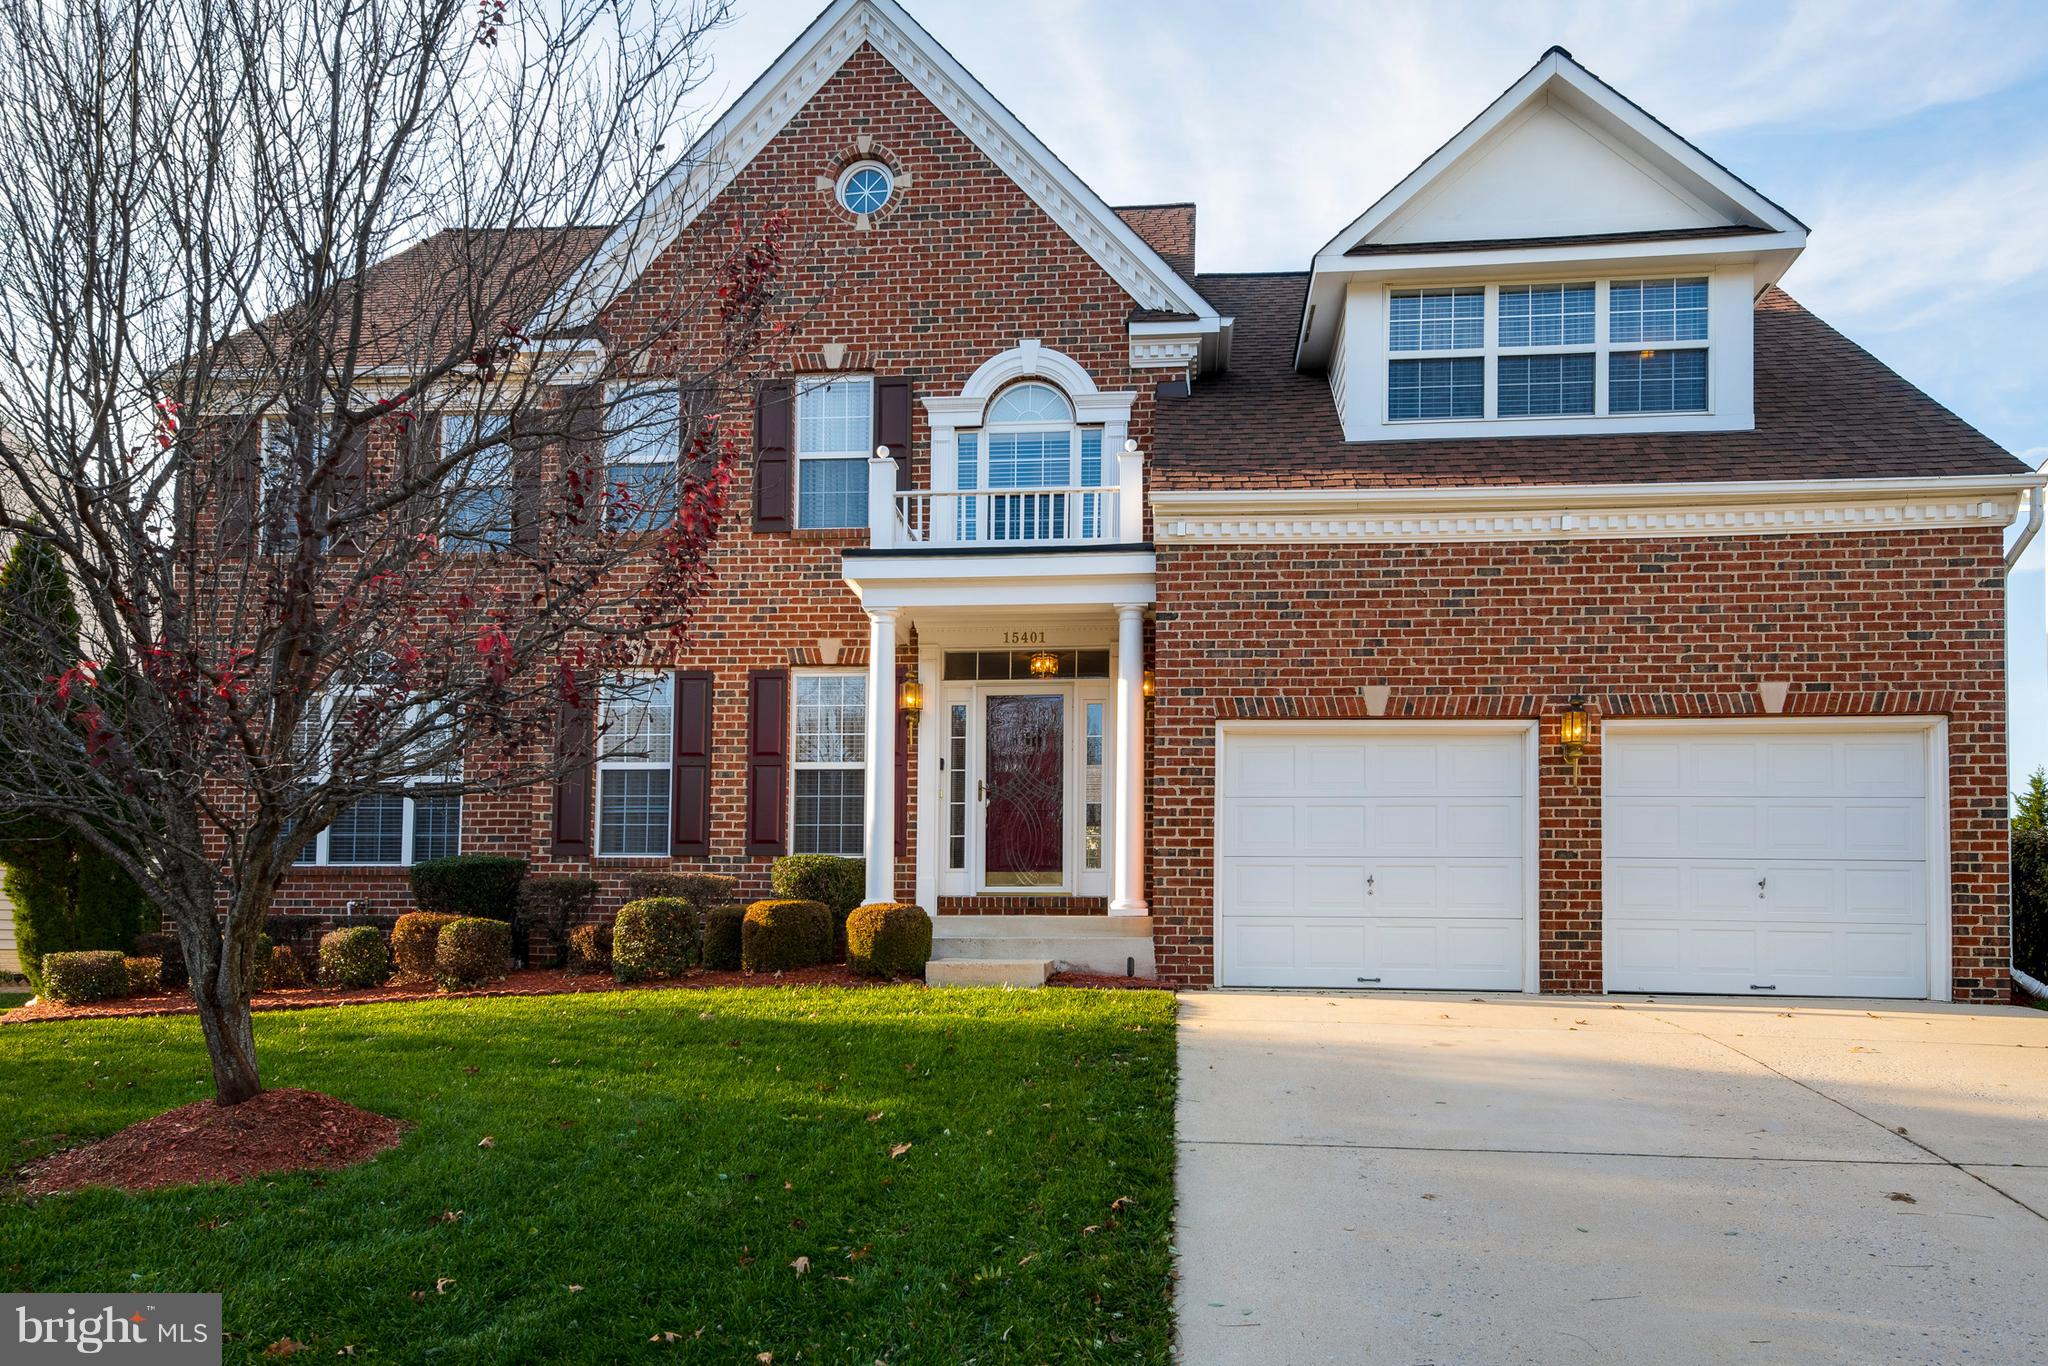 15401 DOVEHEART LANE, BOWIE, MD 20721